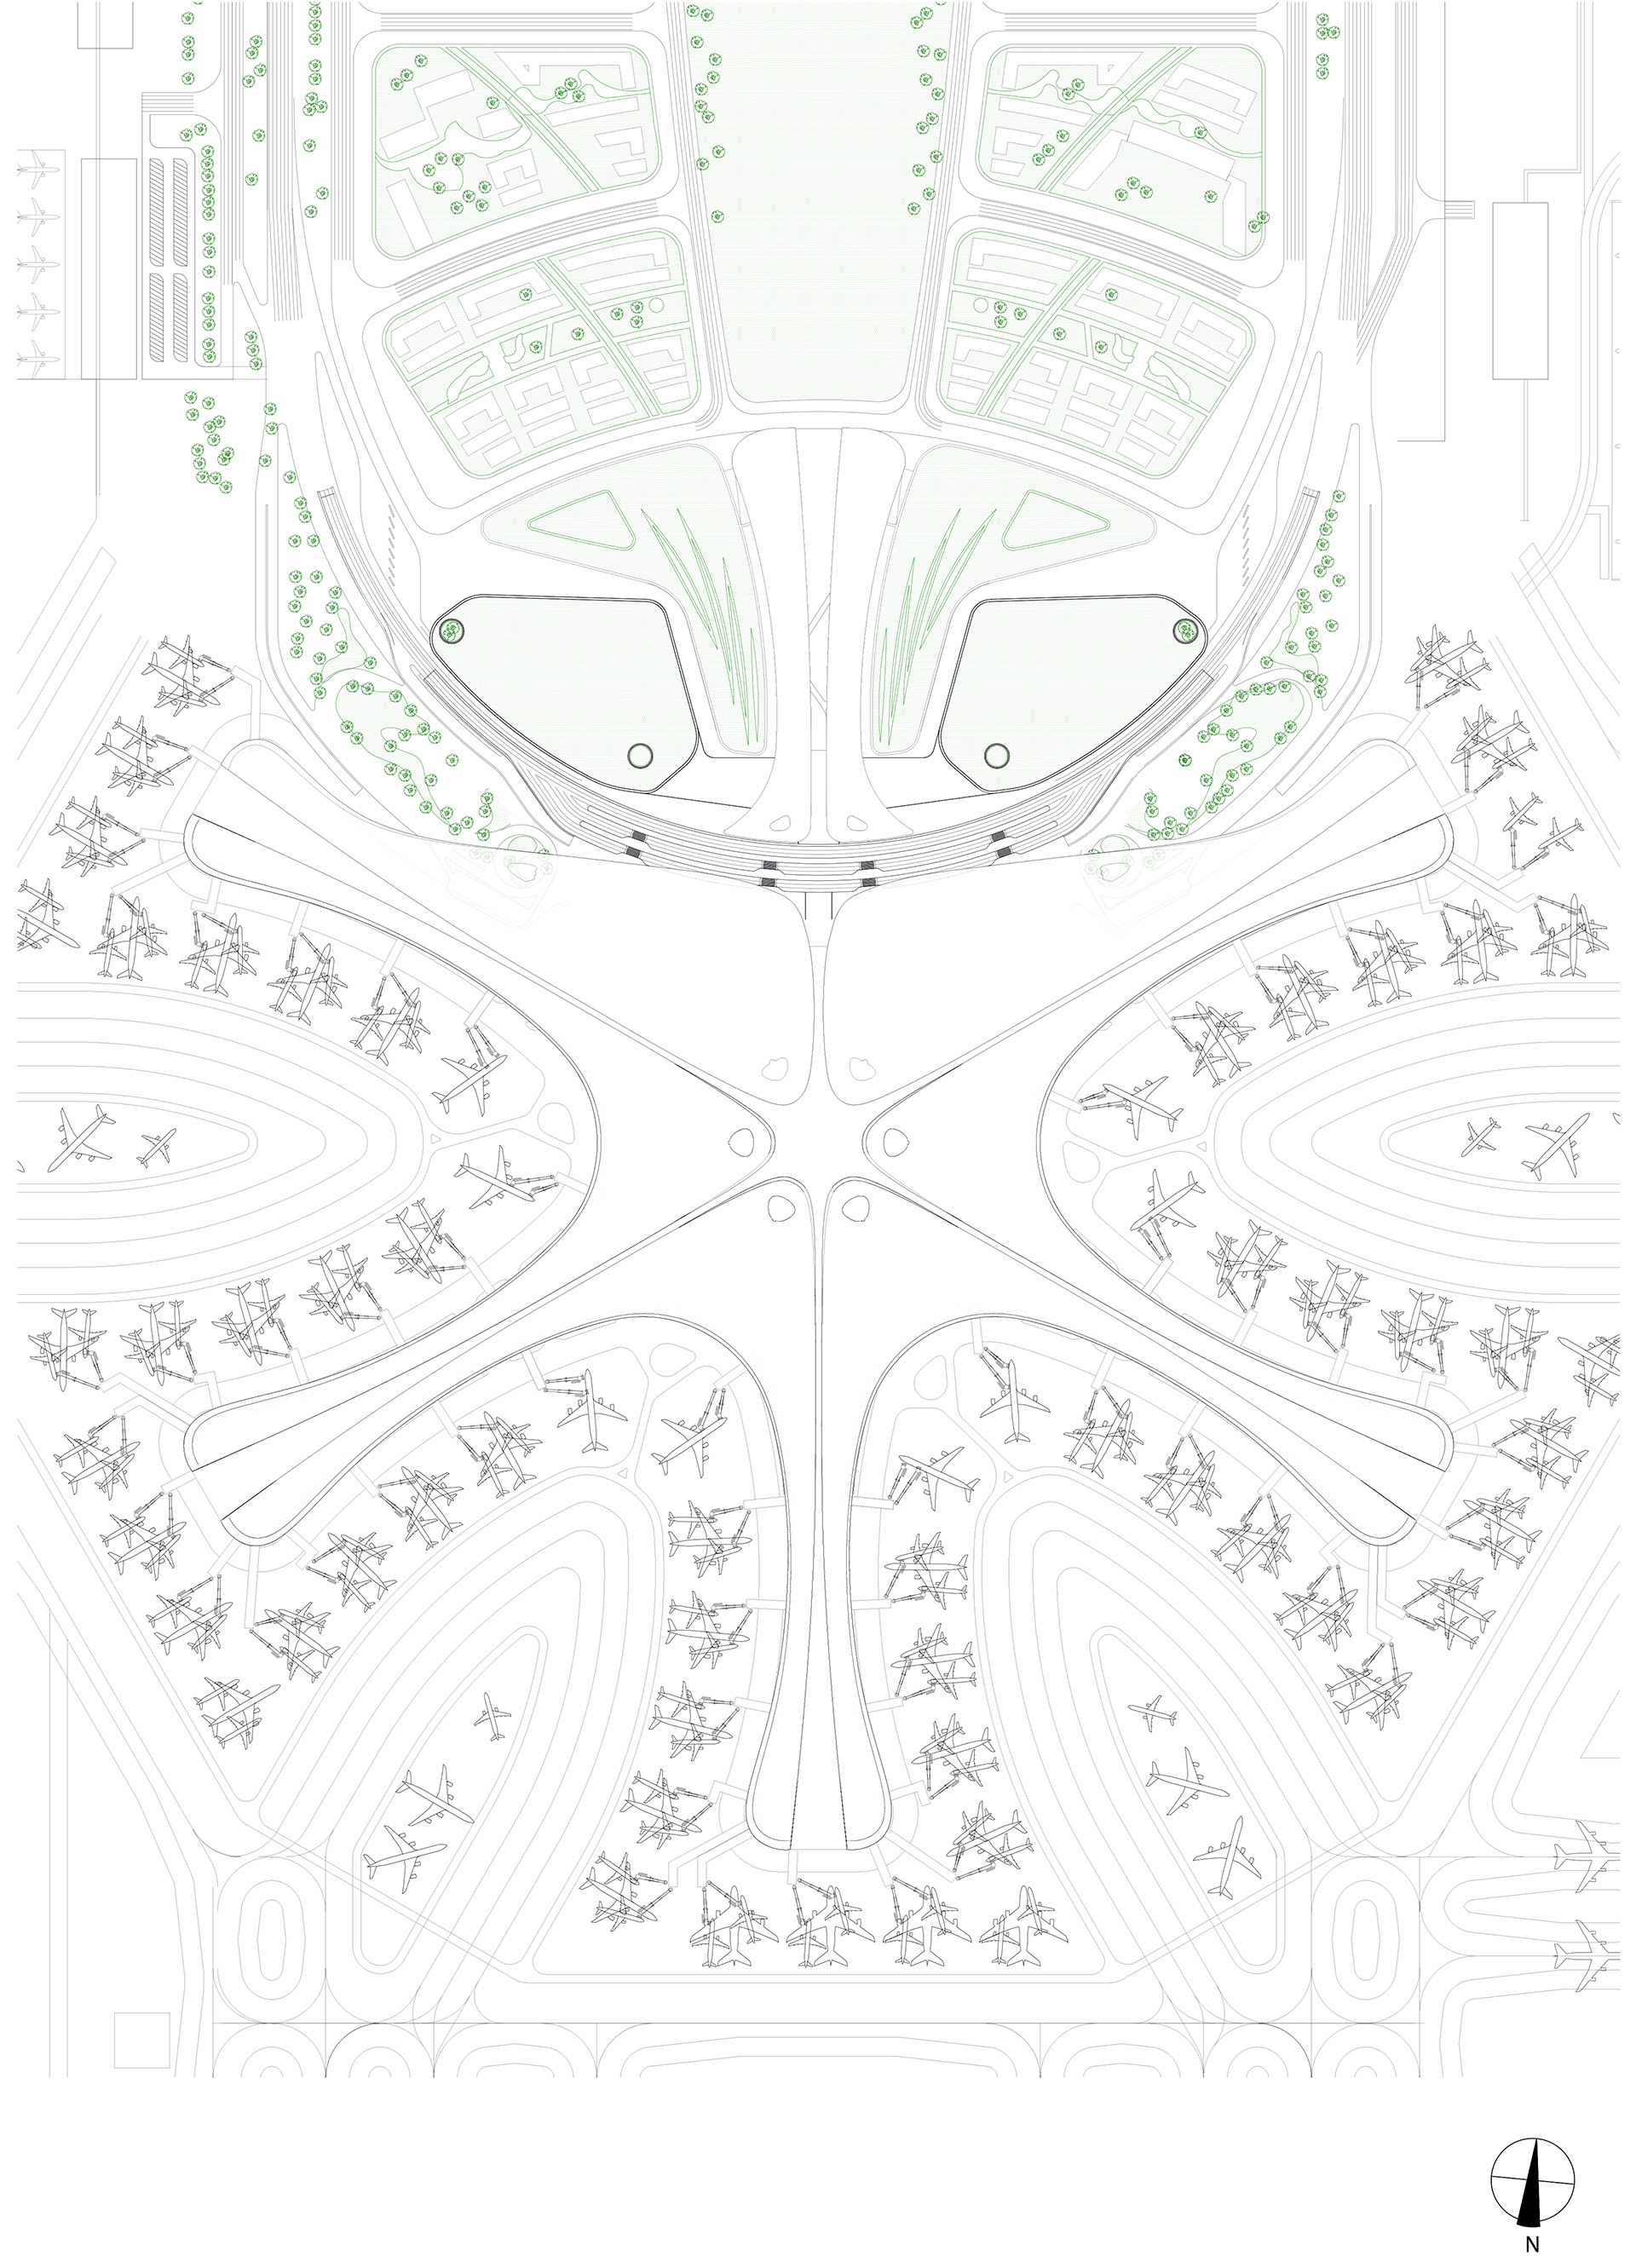 Beijing Daxing International Airport - Roof Plan | Beijing Daxing International Airport | Zaha Hadid Architects | STIRworld